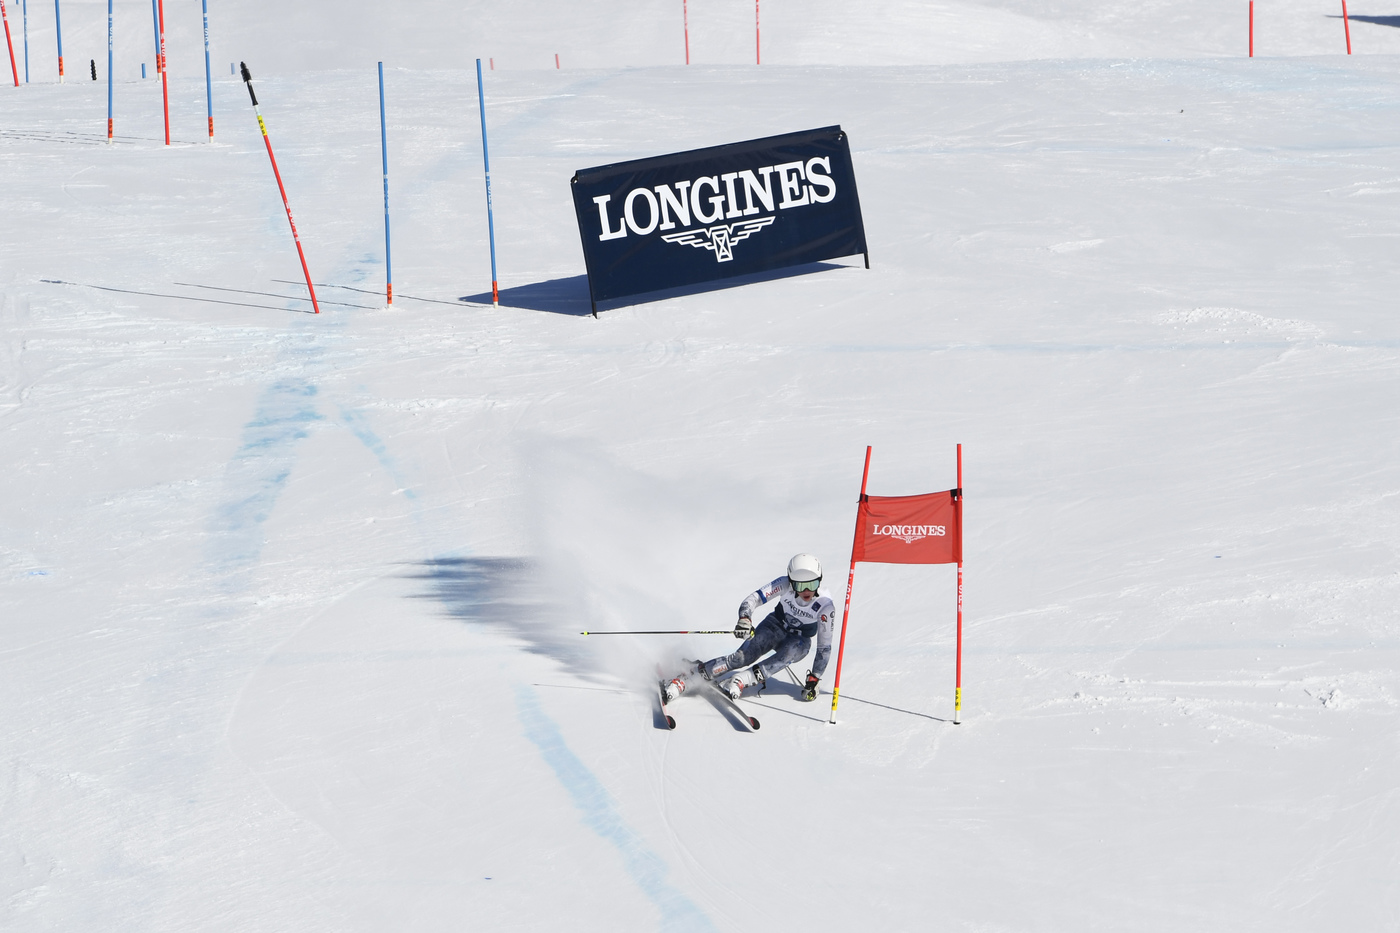 Longines Alpine Skiing Event: Longines Future Ski Champions : The best international young skiers faced off during the FIS Alpine World Cup Finals   24